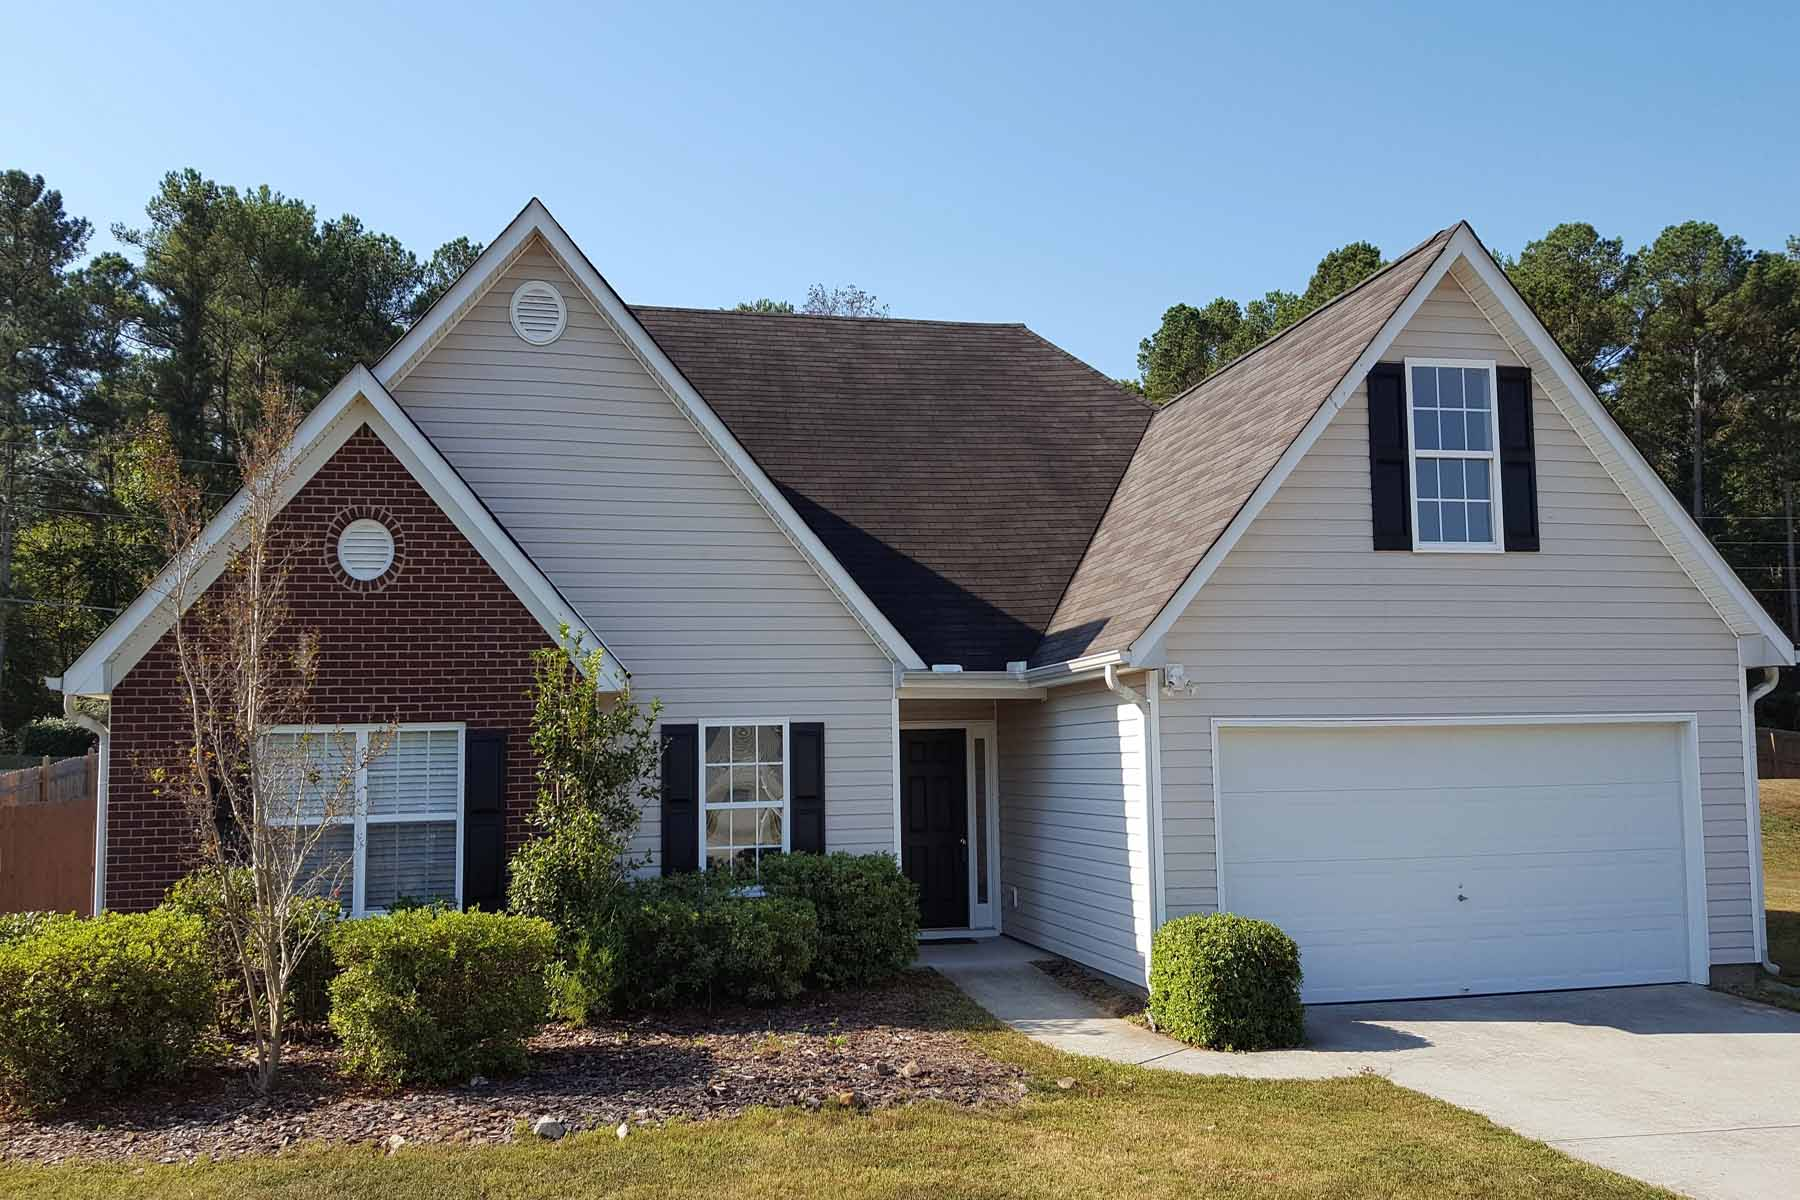 단독 가정 주택 용 매매 에 A Gwinnett Ranch Home with Bonus Room on Spacious Fenced Corner Lot 3396 Madison Ridge Trail Snellville, 조지아 30039 미국